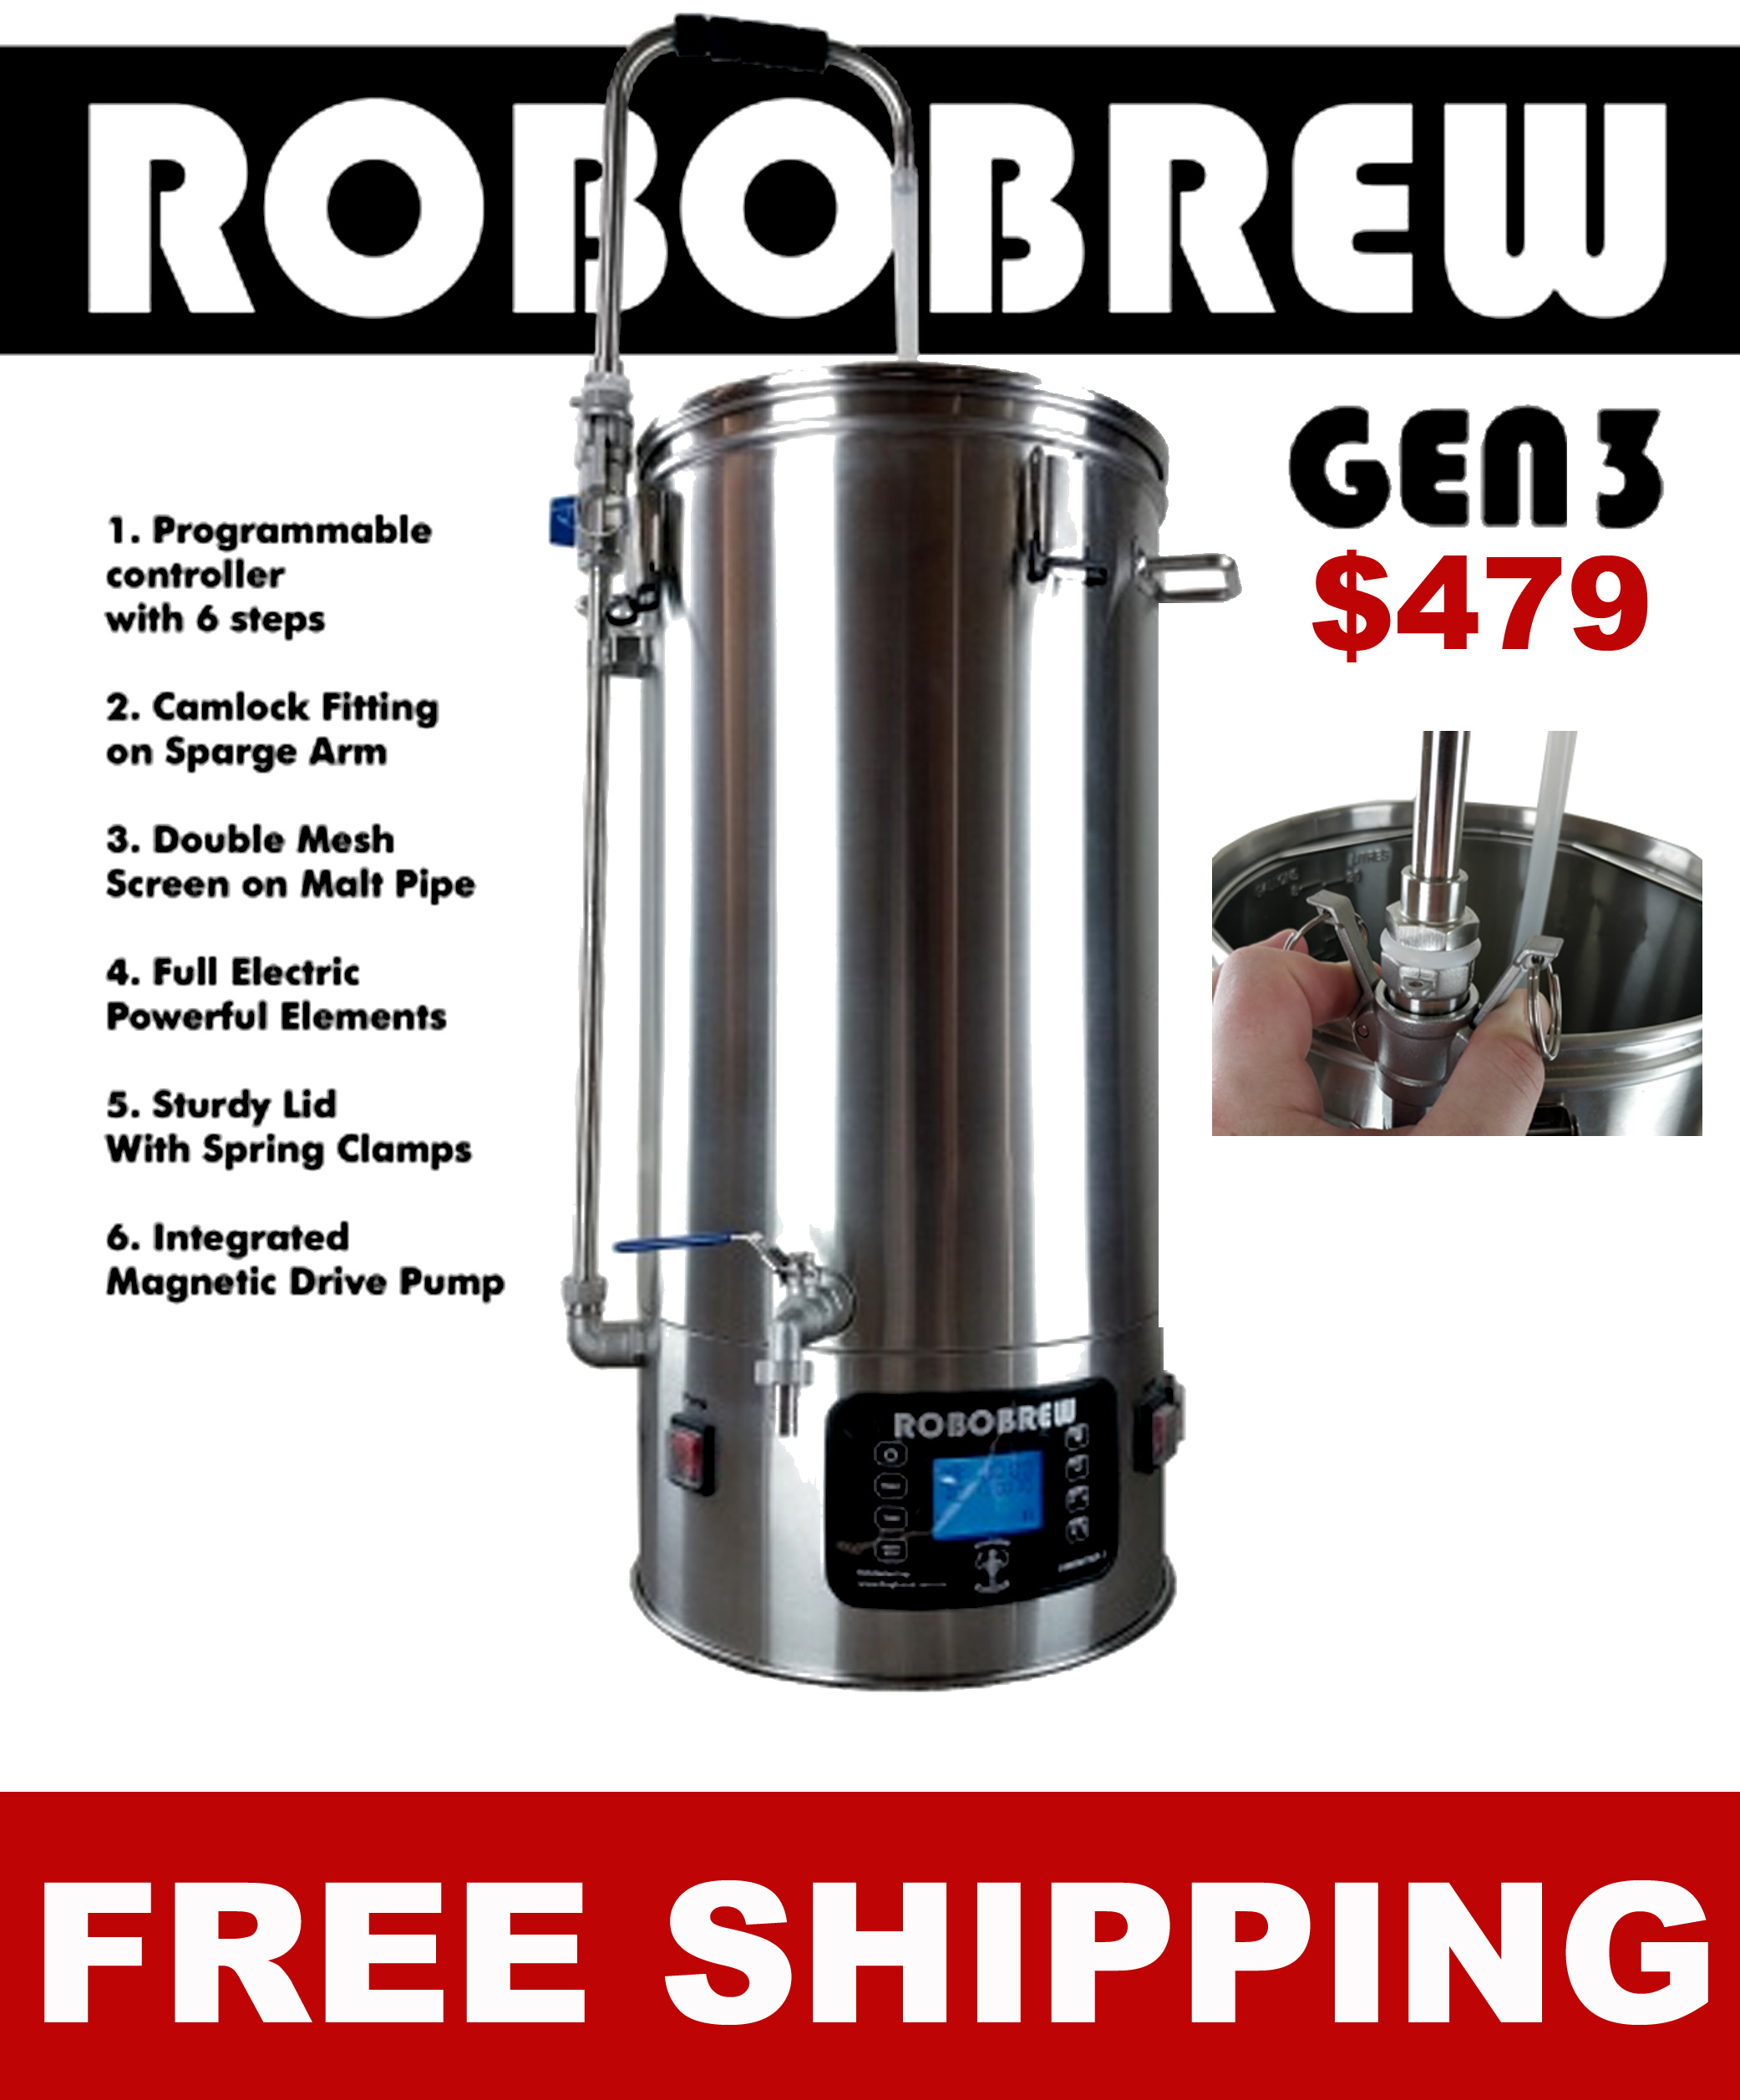 Get A NEW Generation 3 RoboBrew for Just $479 + FREE SHIPPING Coupon Code